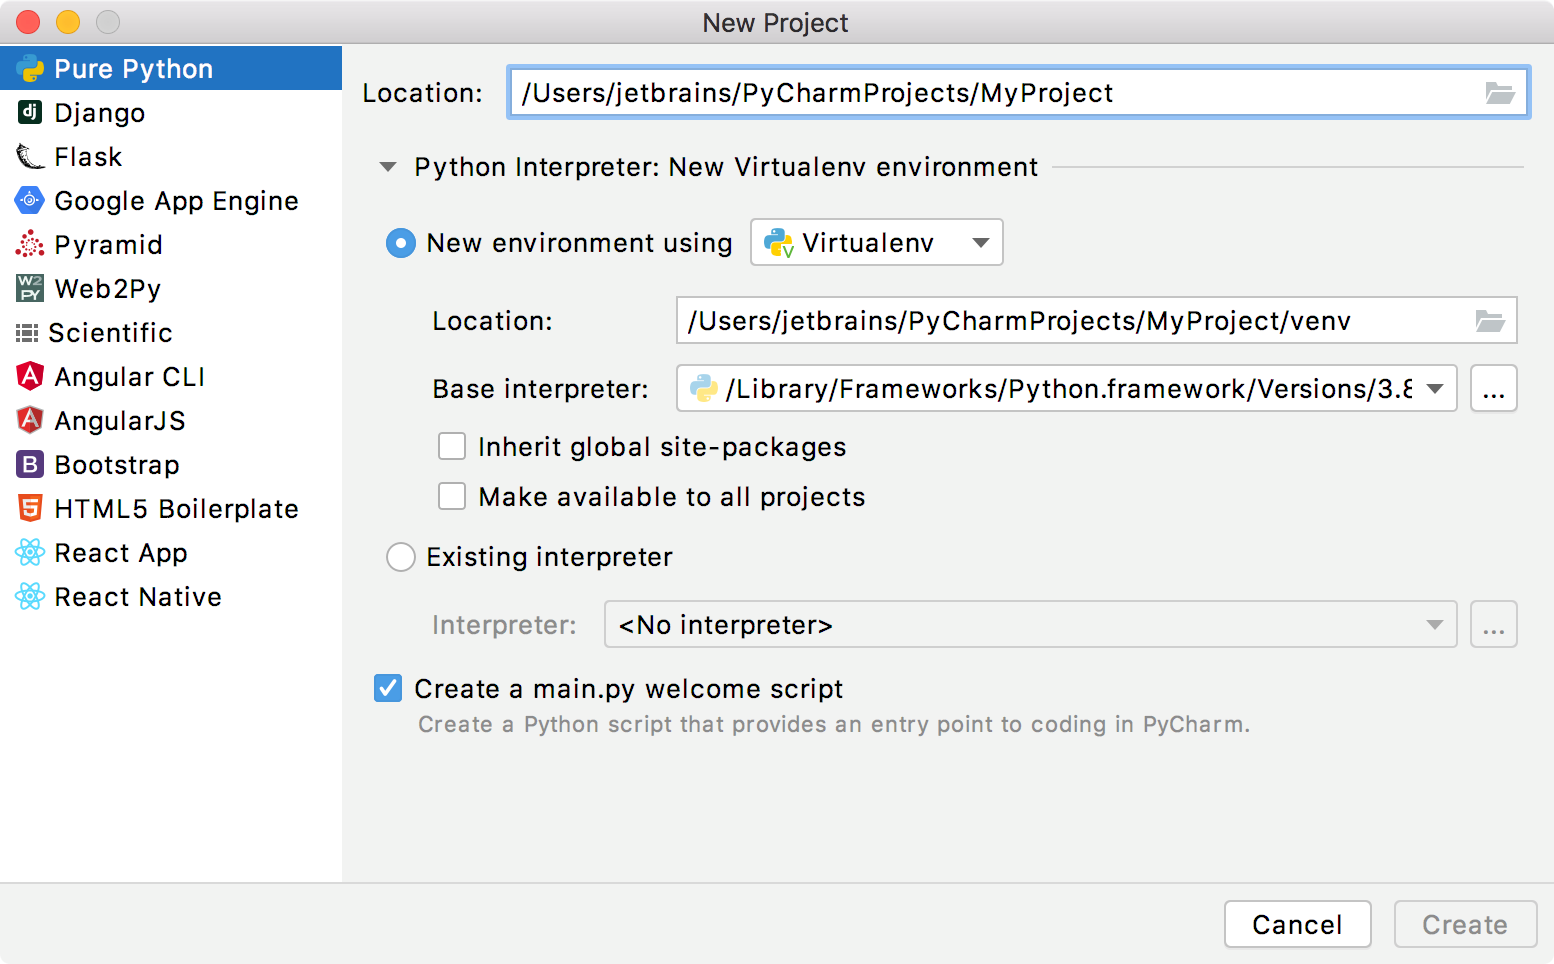 Creating a PyCharm helps implement new project